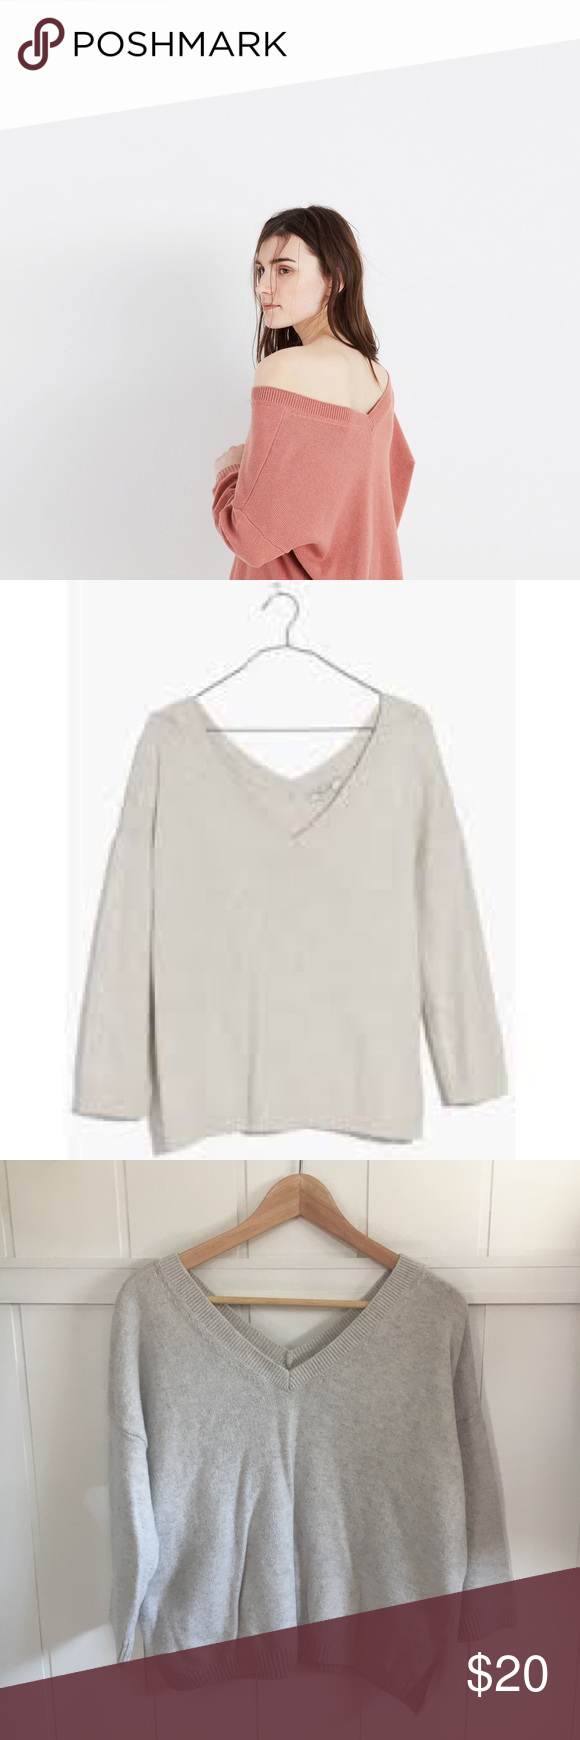 Madewell Double V Sweater in Pale Gray Double V sweater by